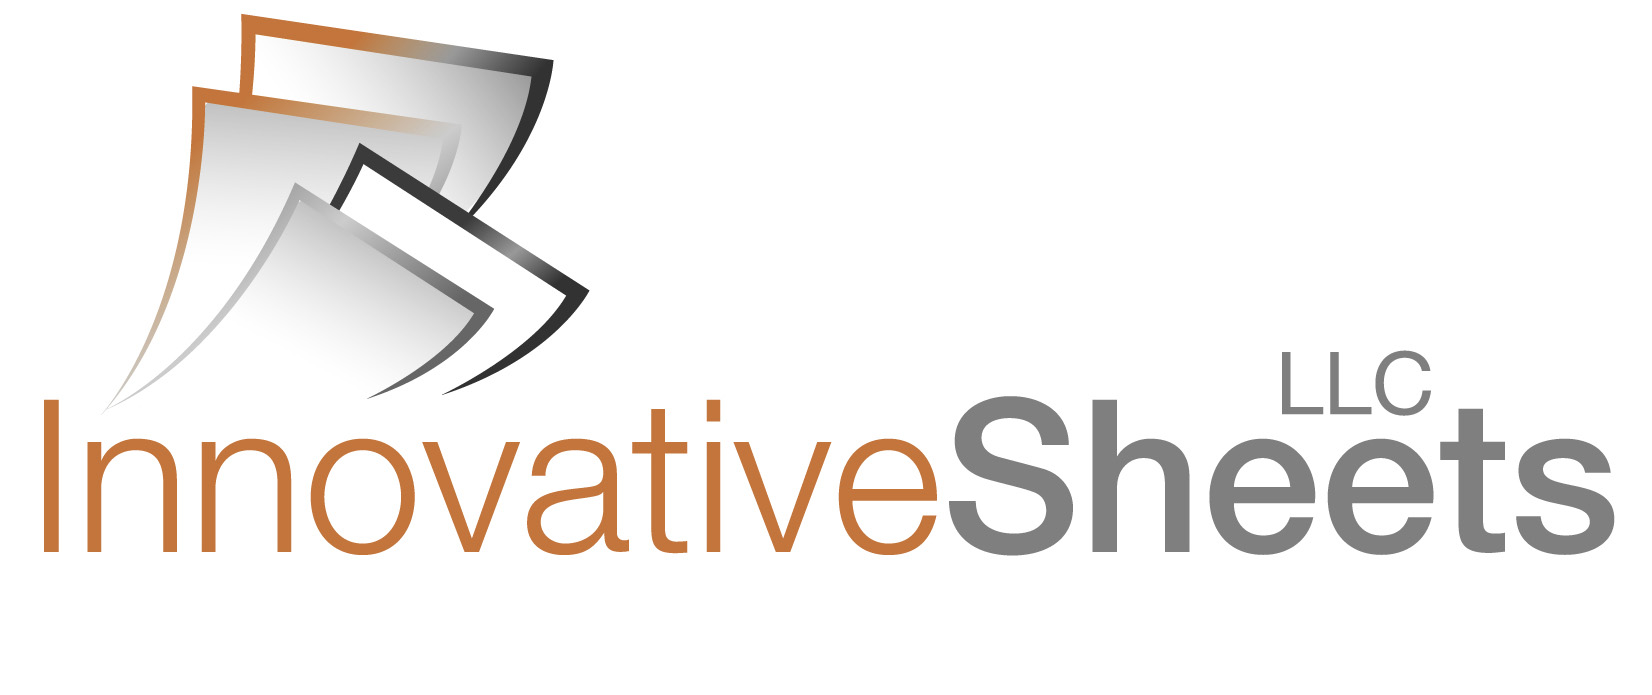 innovativesheets.com